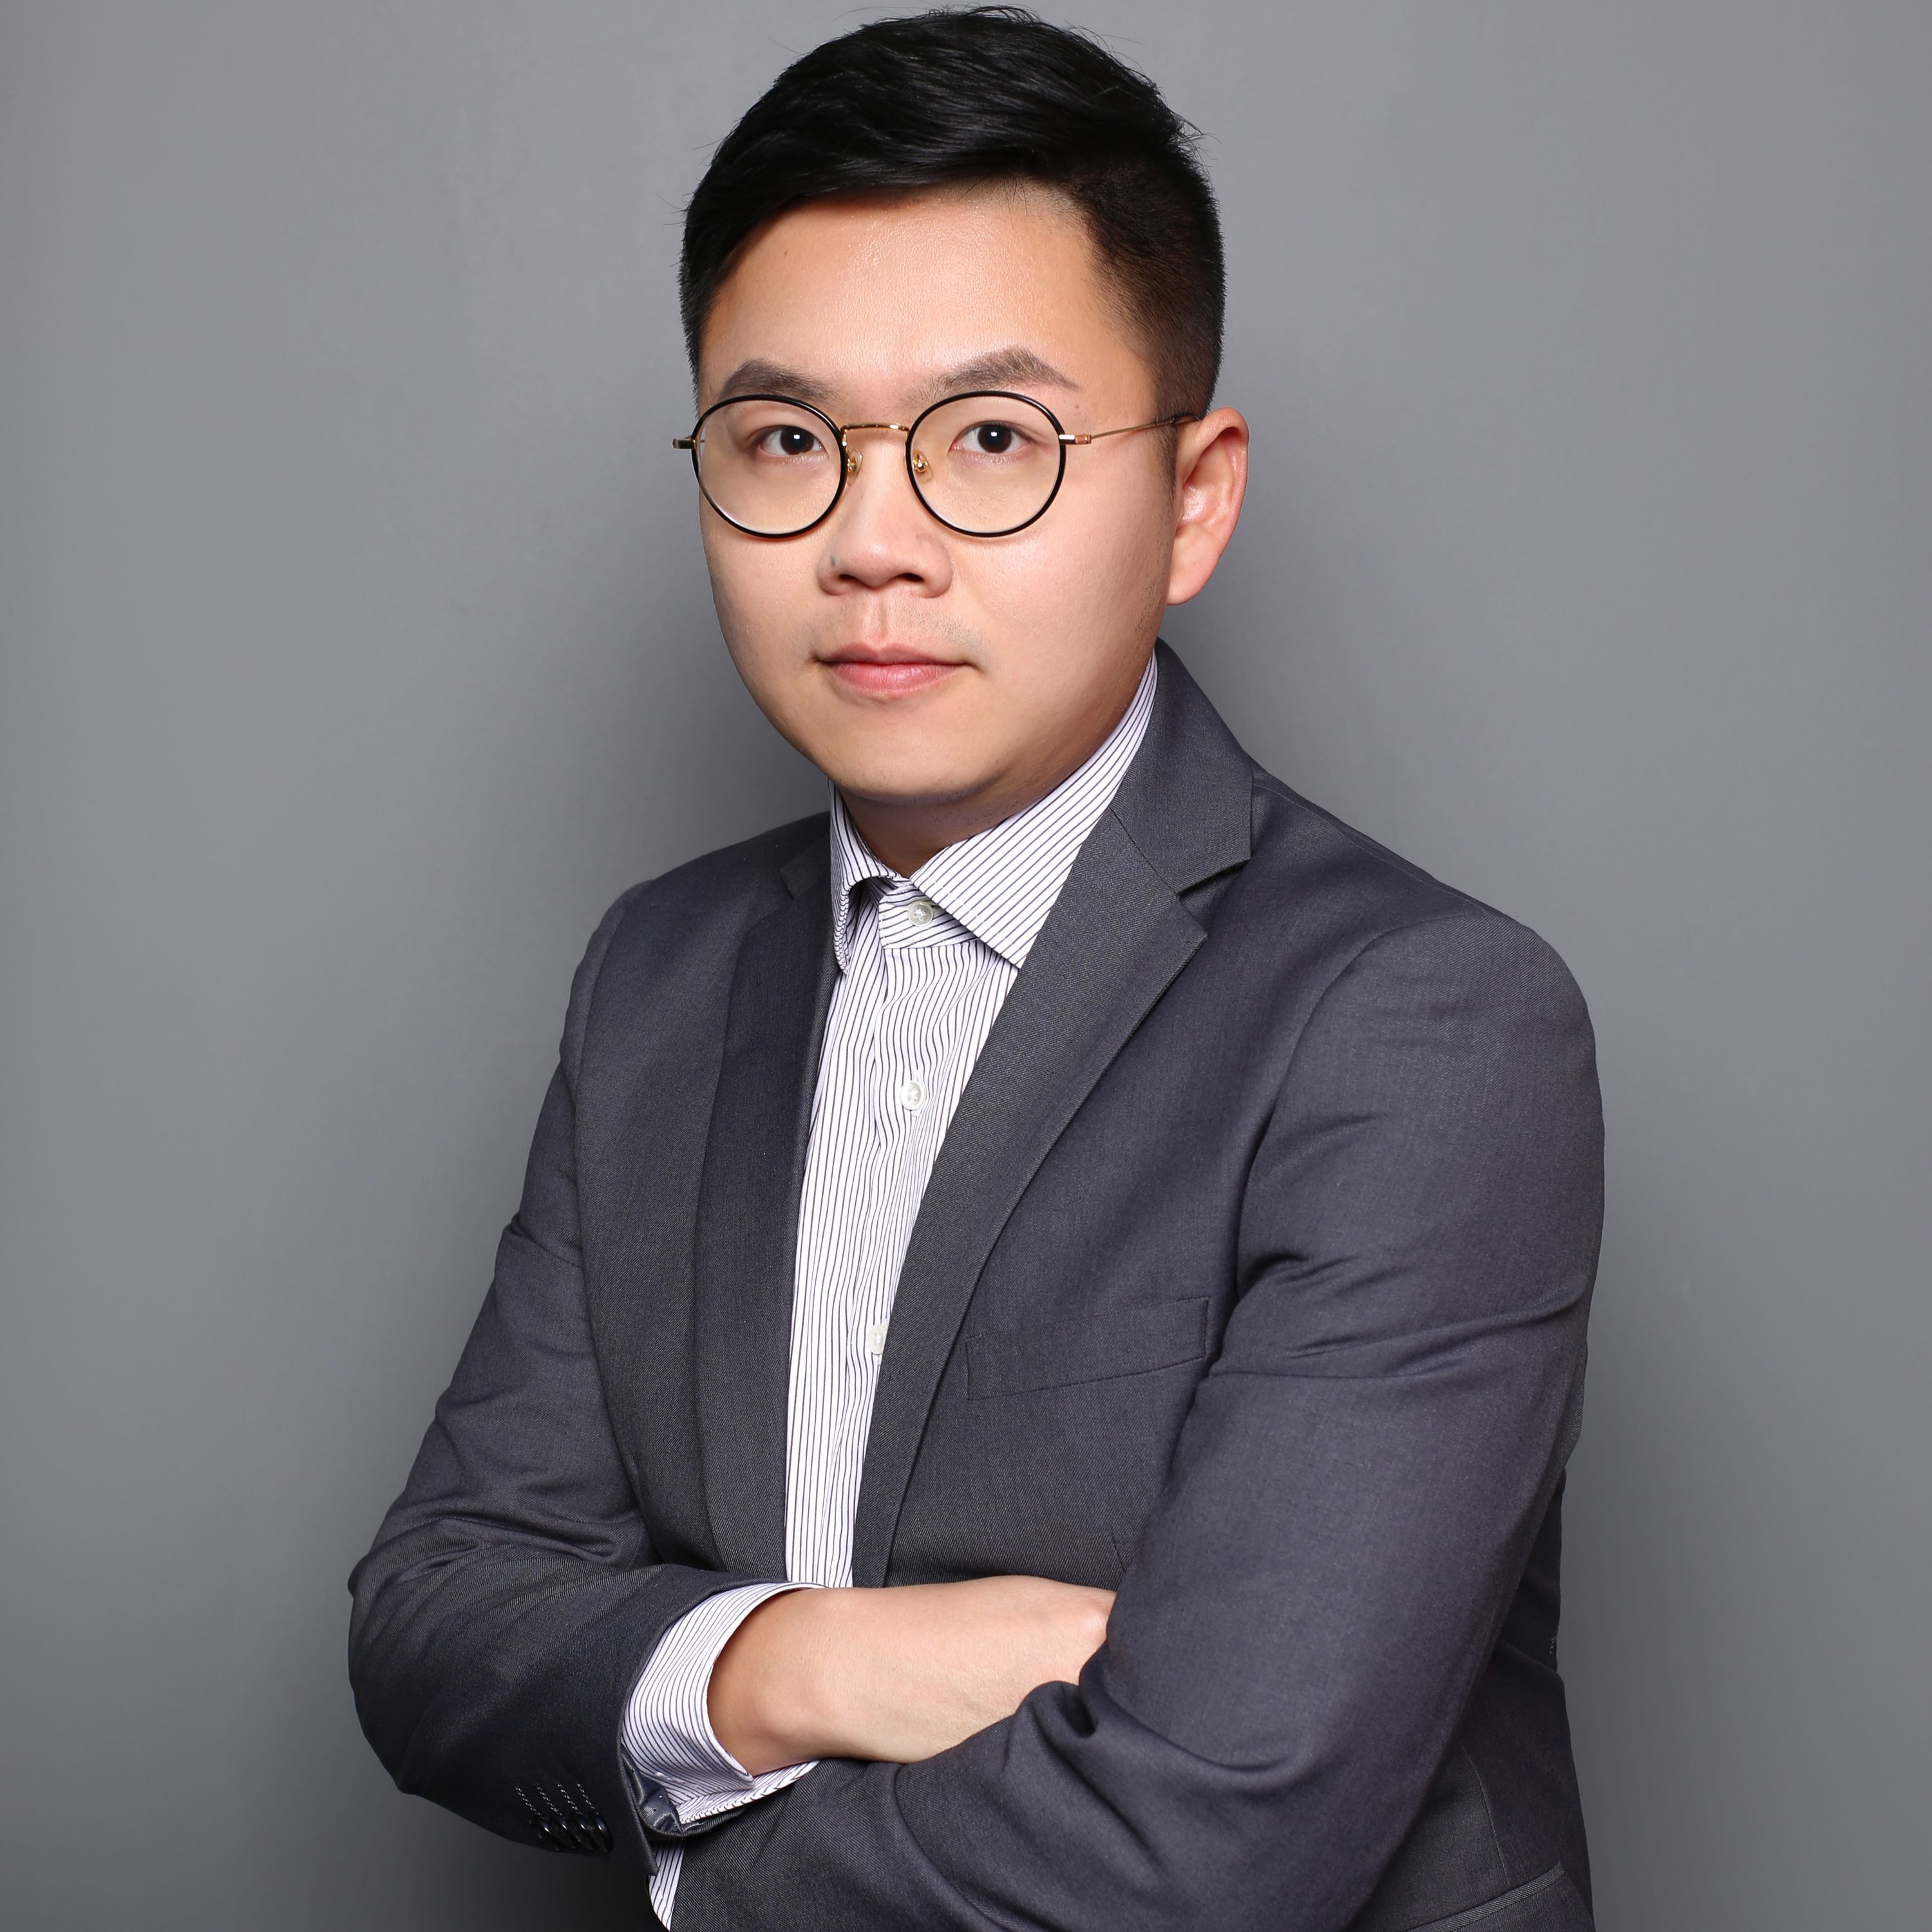 How Citybox Finds Own Position Among Fierce Unmanned Retail Competitions, with Co-founder & COO Neo Lv